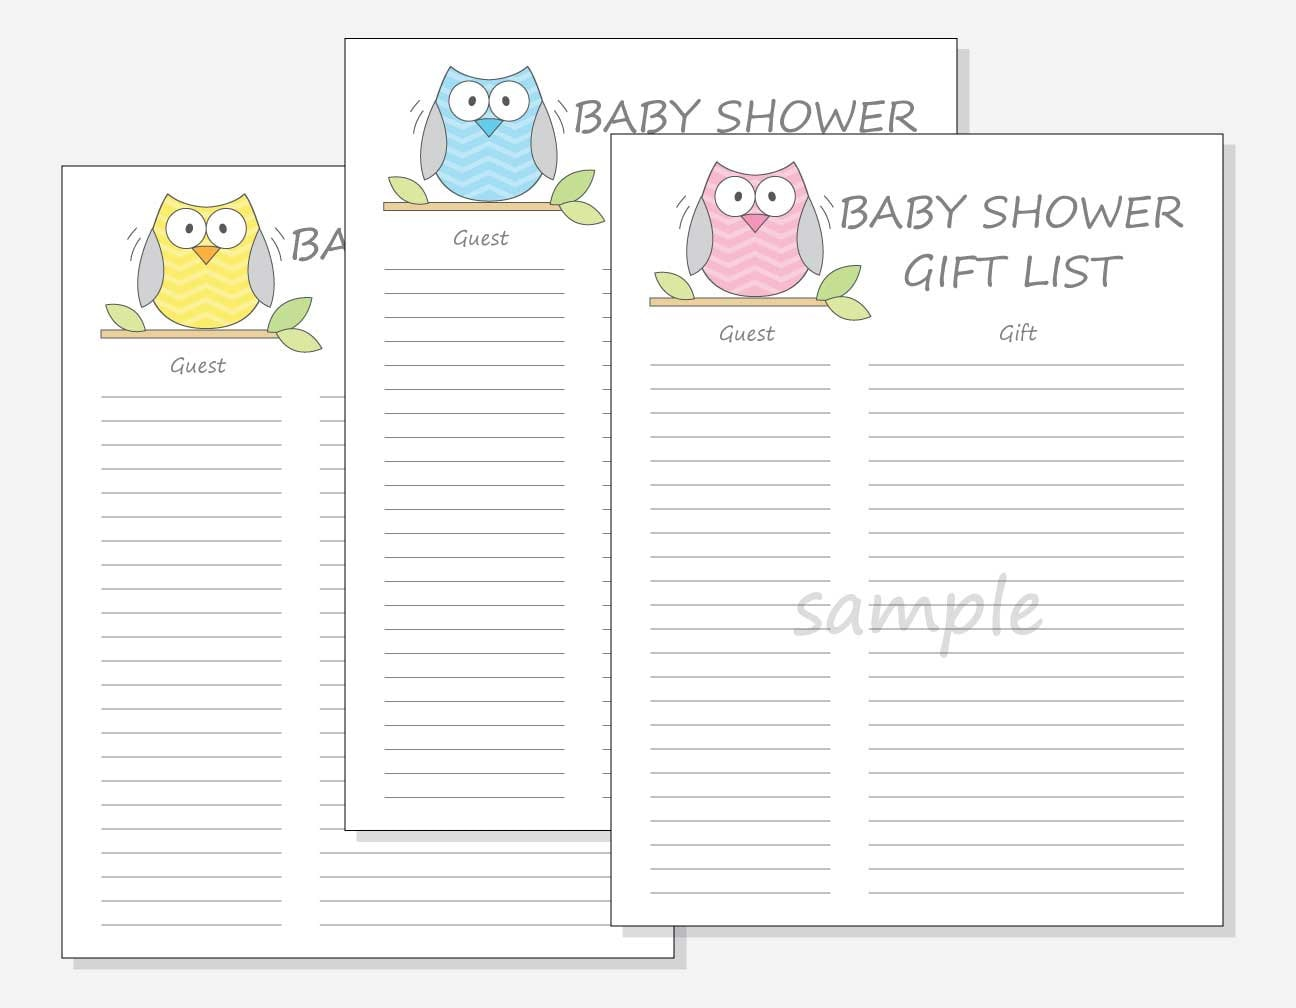 diy baby shower guest gift list printable chevron owl design